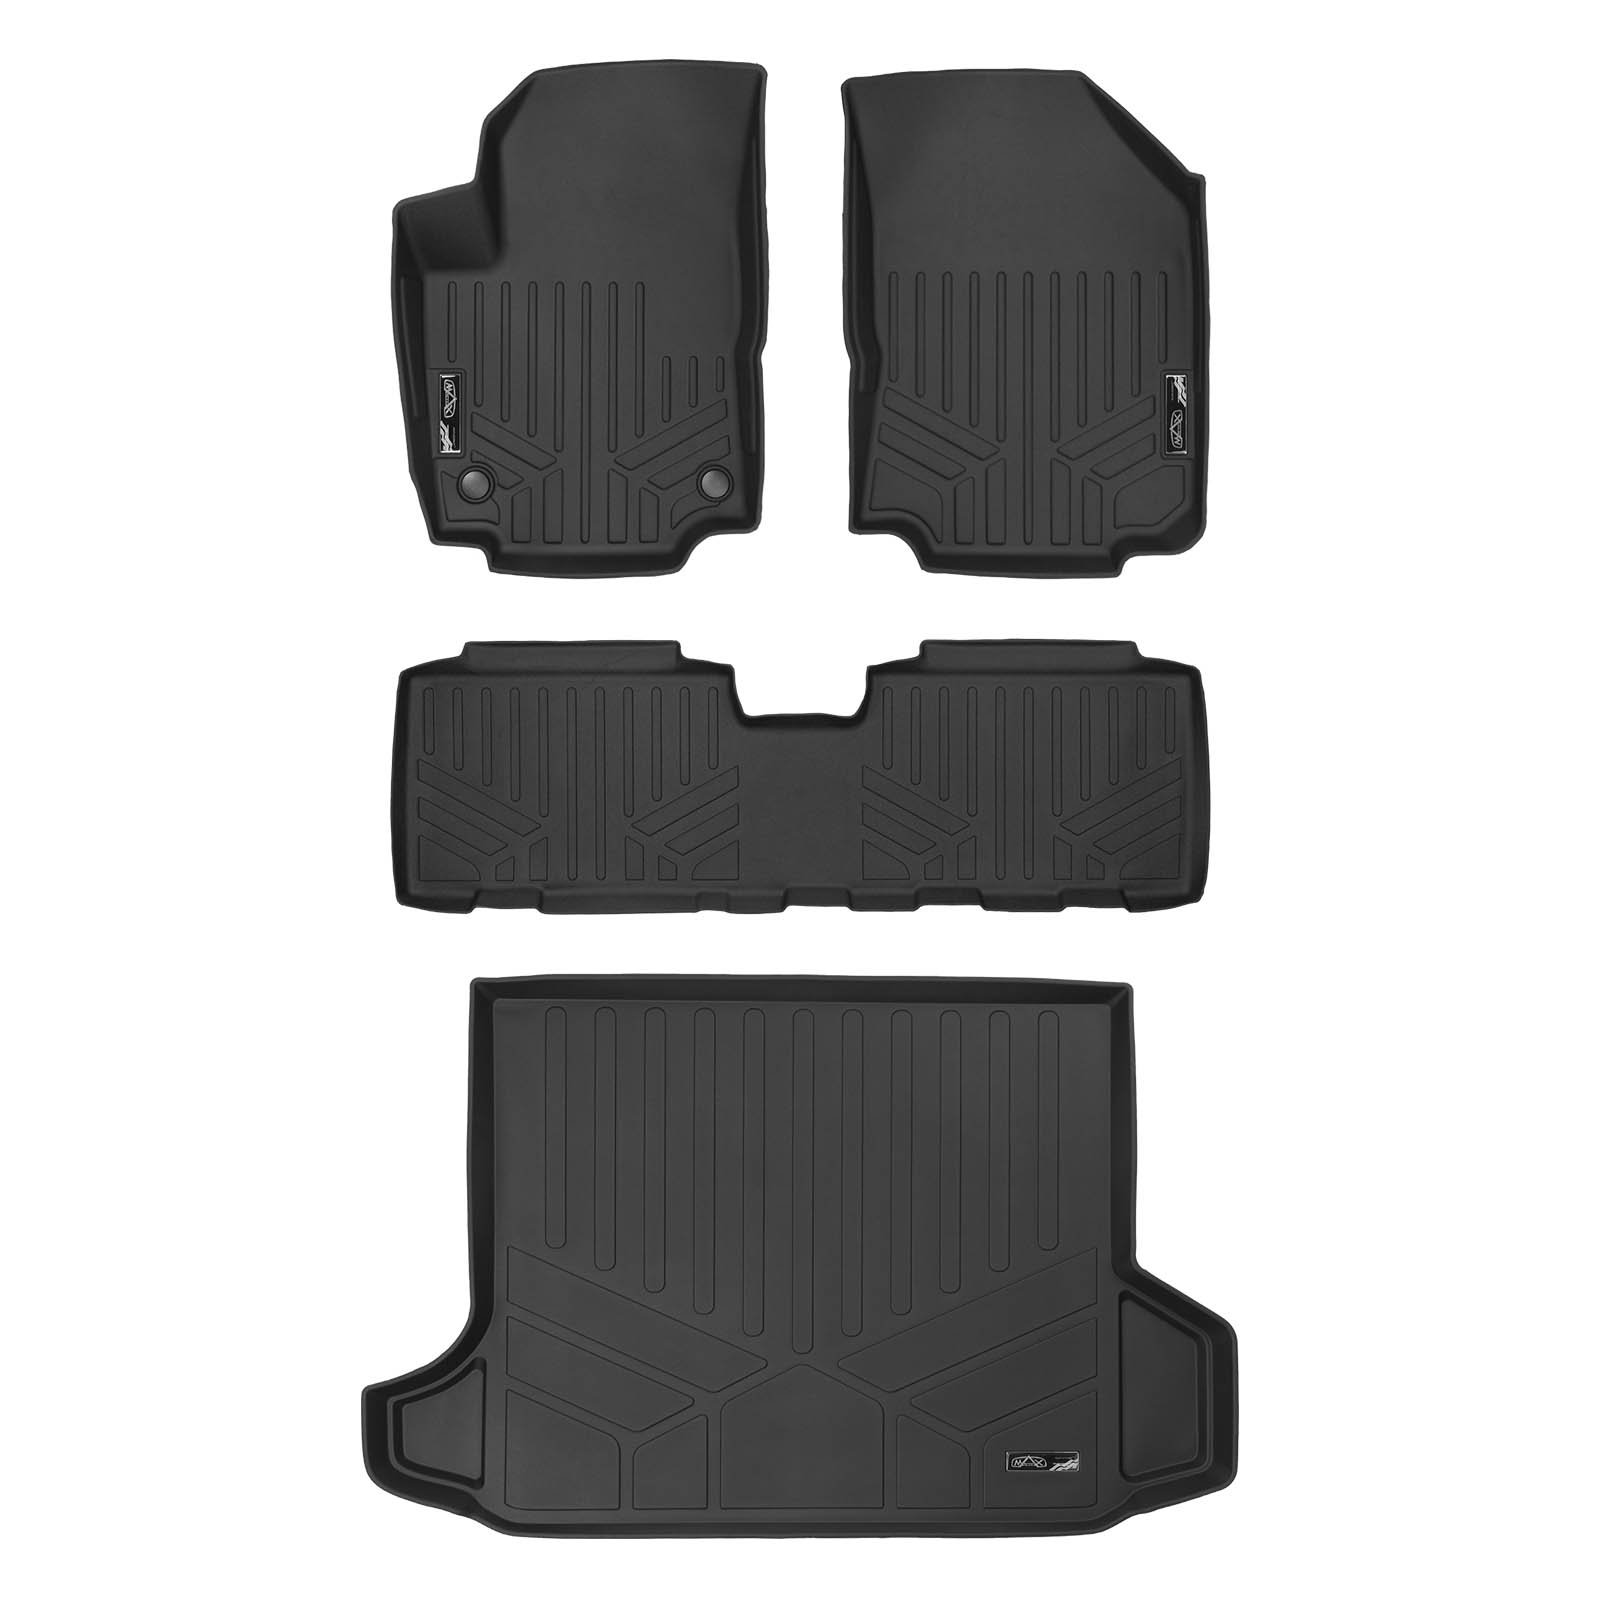 MAX LINER A0310/B0310/D0310 Custom Fit Floor Mats 2 Rows and Cargo Liner Black for 2018-2019 Chevrolet Equinox